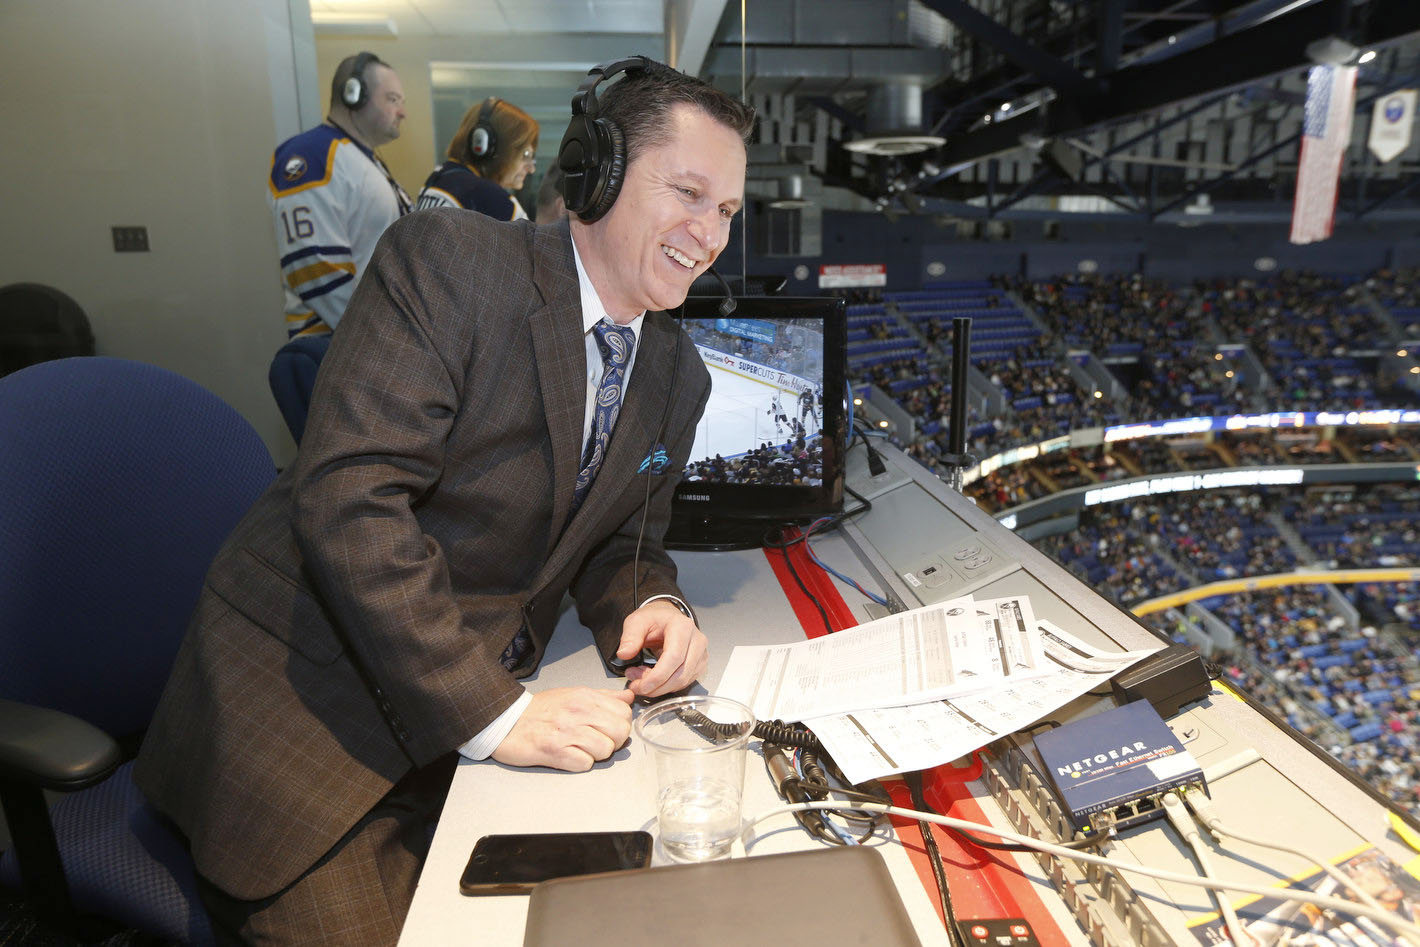 Sabres announcer Dan Dunleavy in the press box. (Robert Kirkham/News file photo)